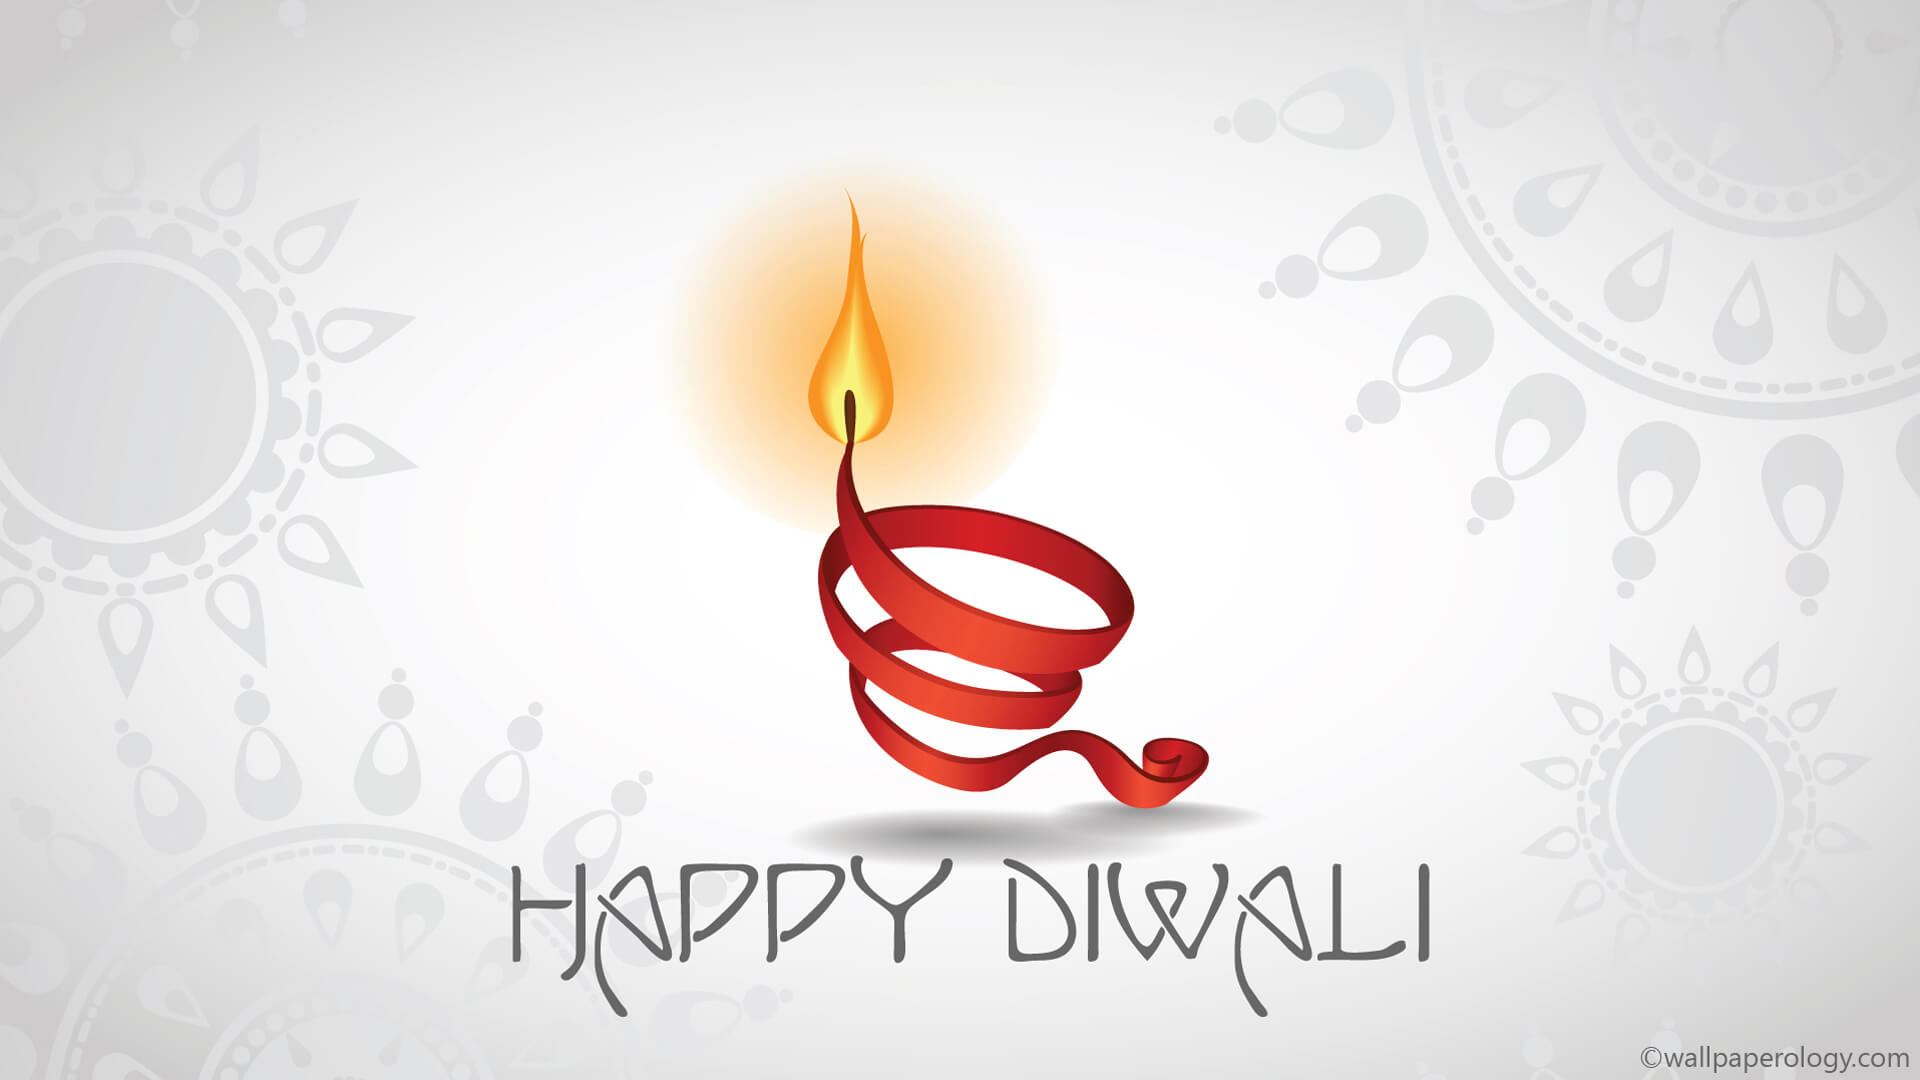 Happy Diwali Deepavali 2017 Wishes Images Whatsapp Quotes